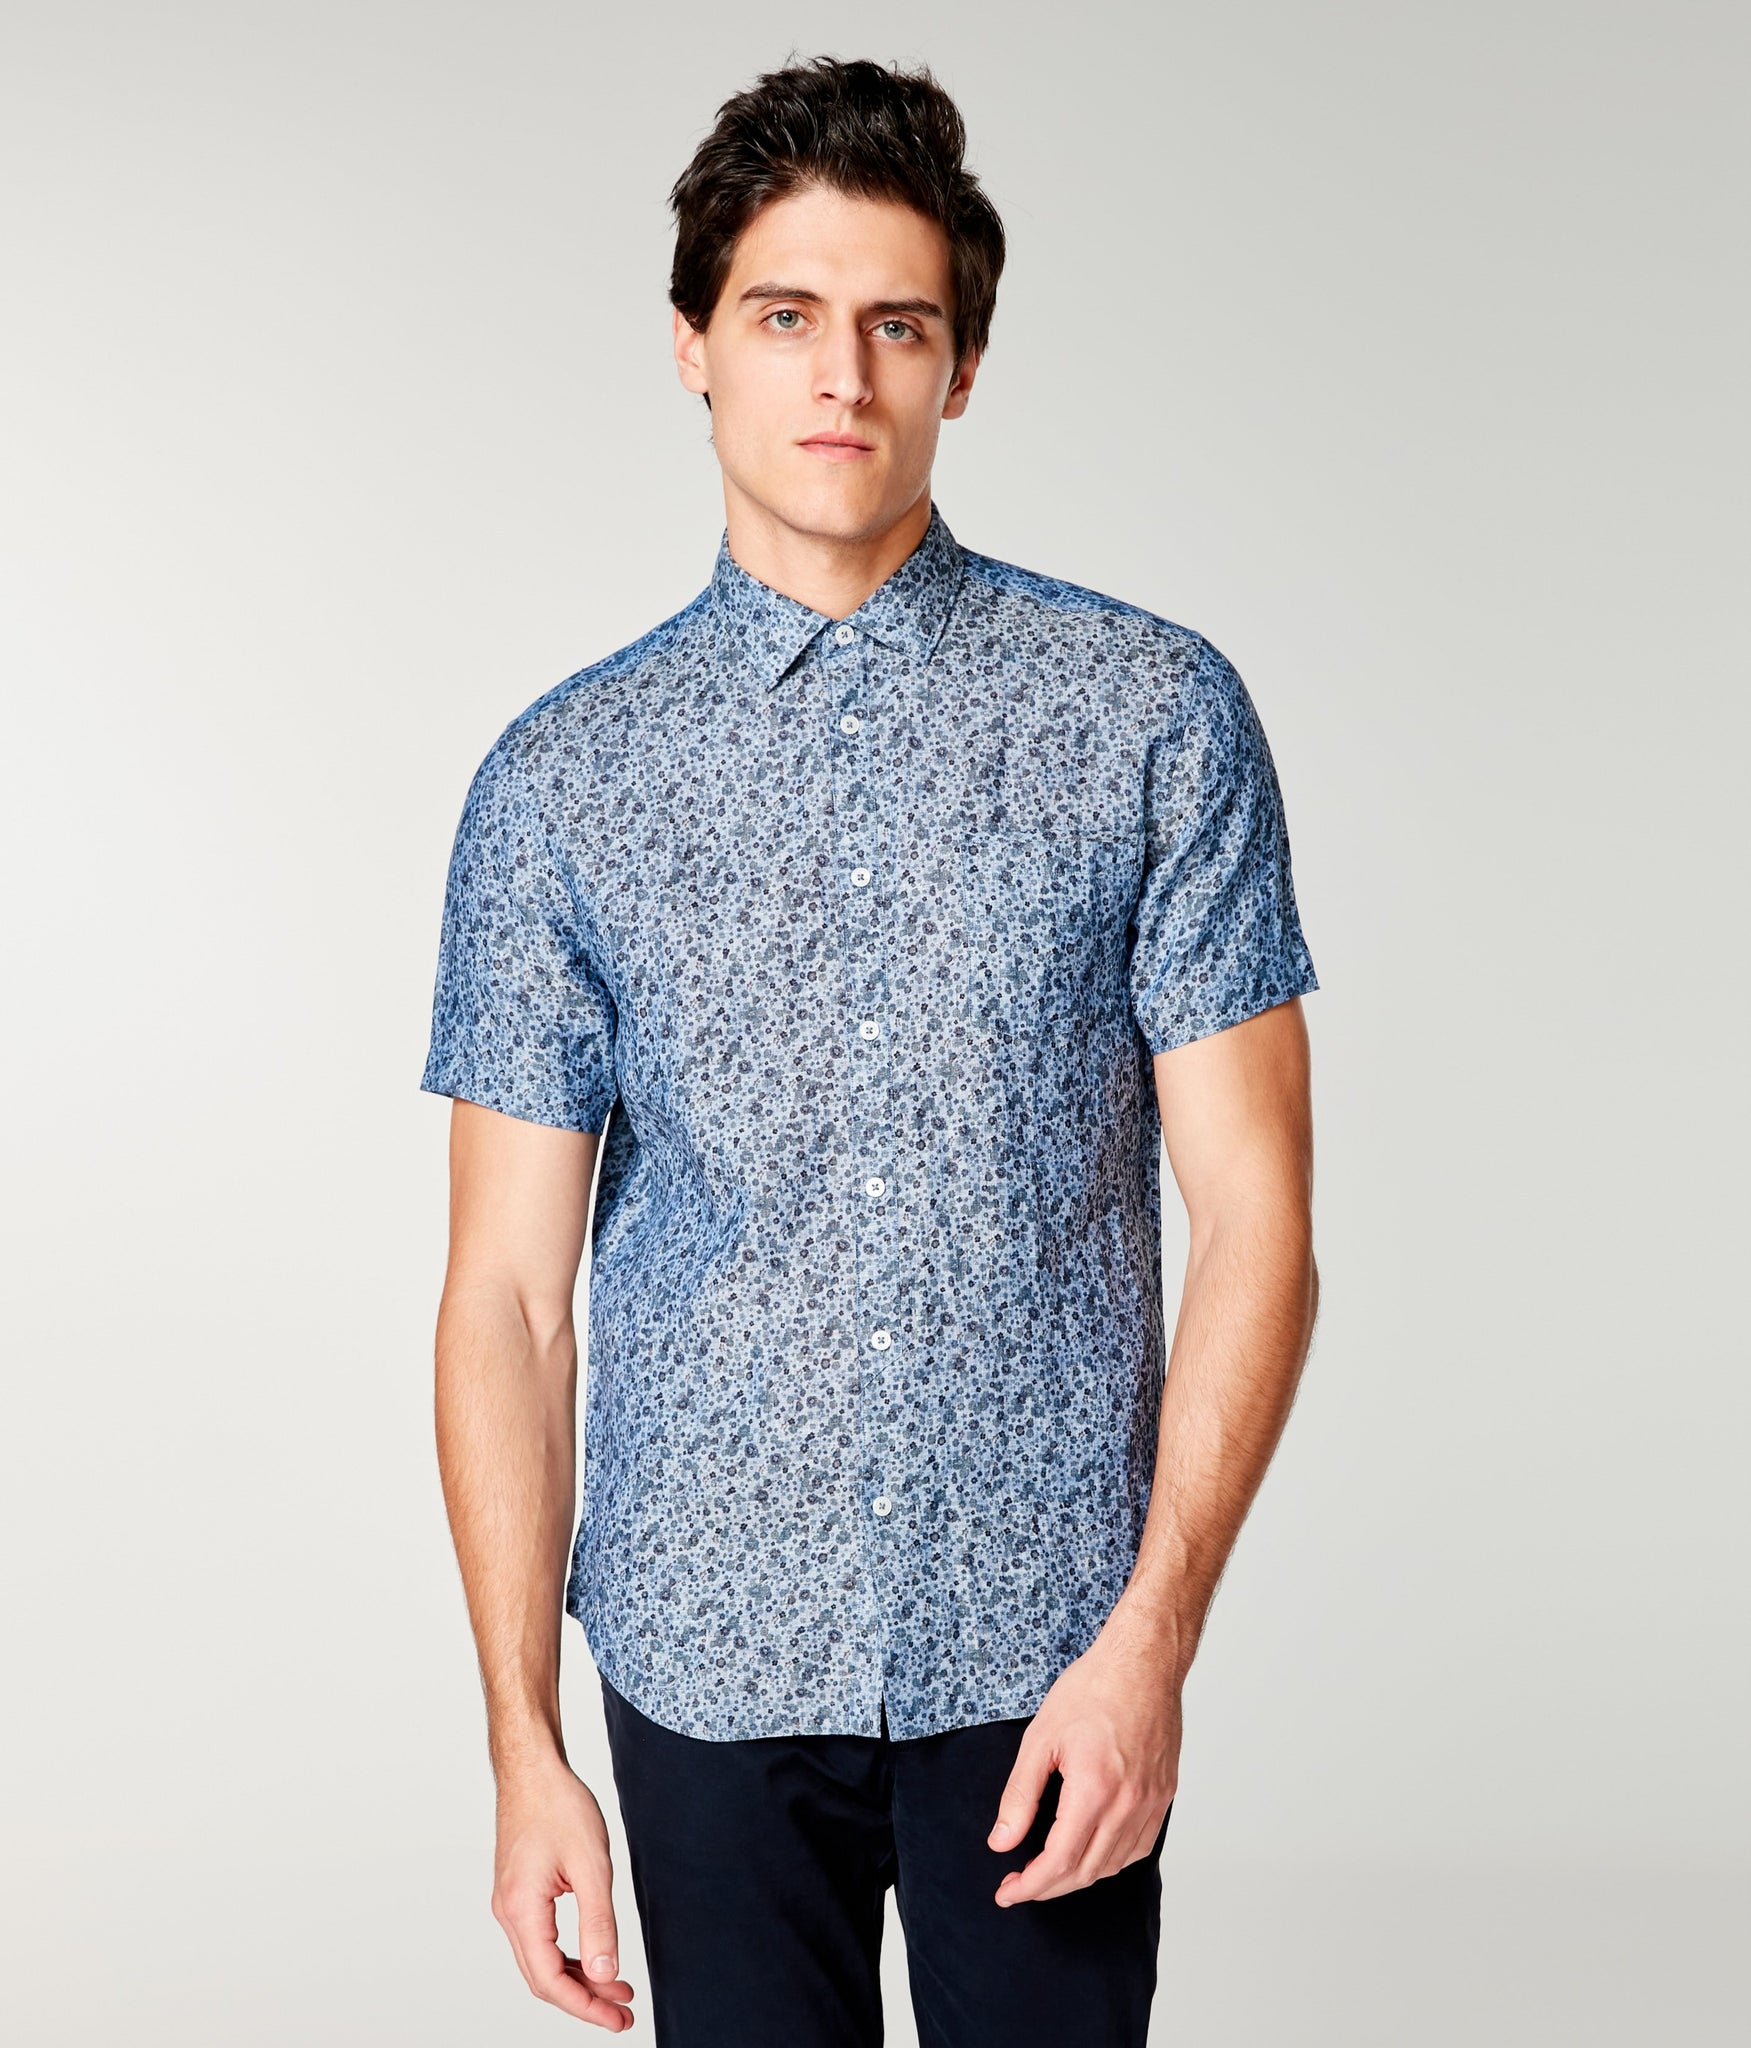 Linen On-Point Print Shirt Short Sleeve - Blue Topaz Daisy Play